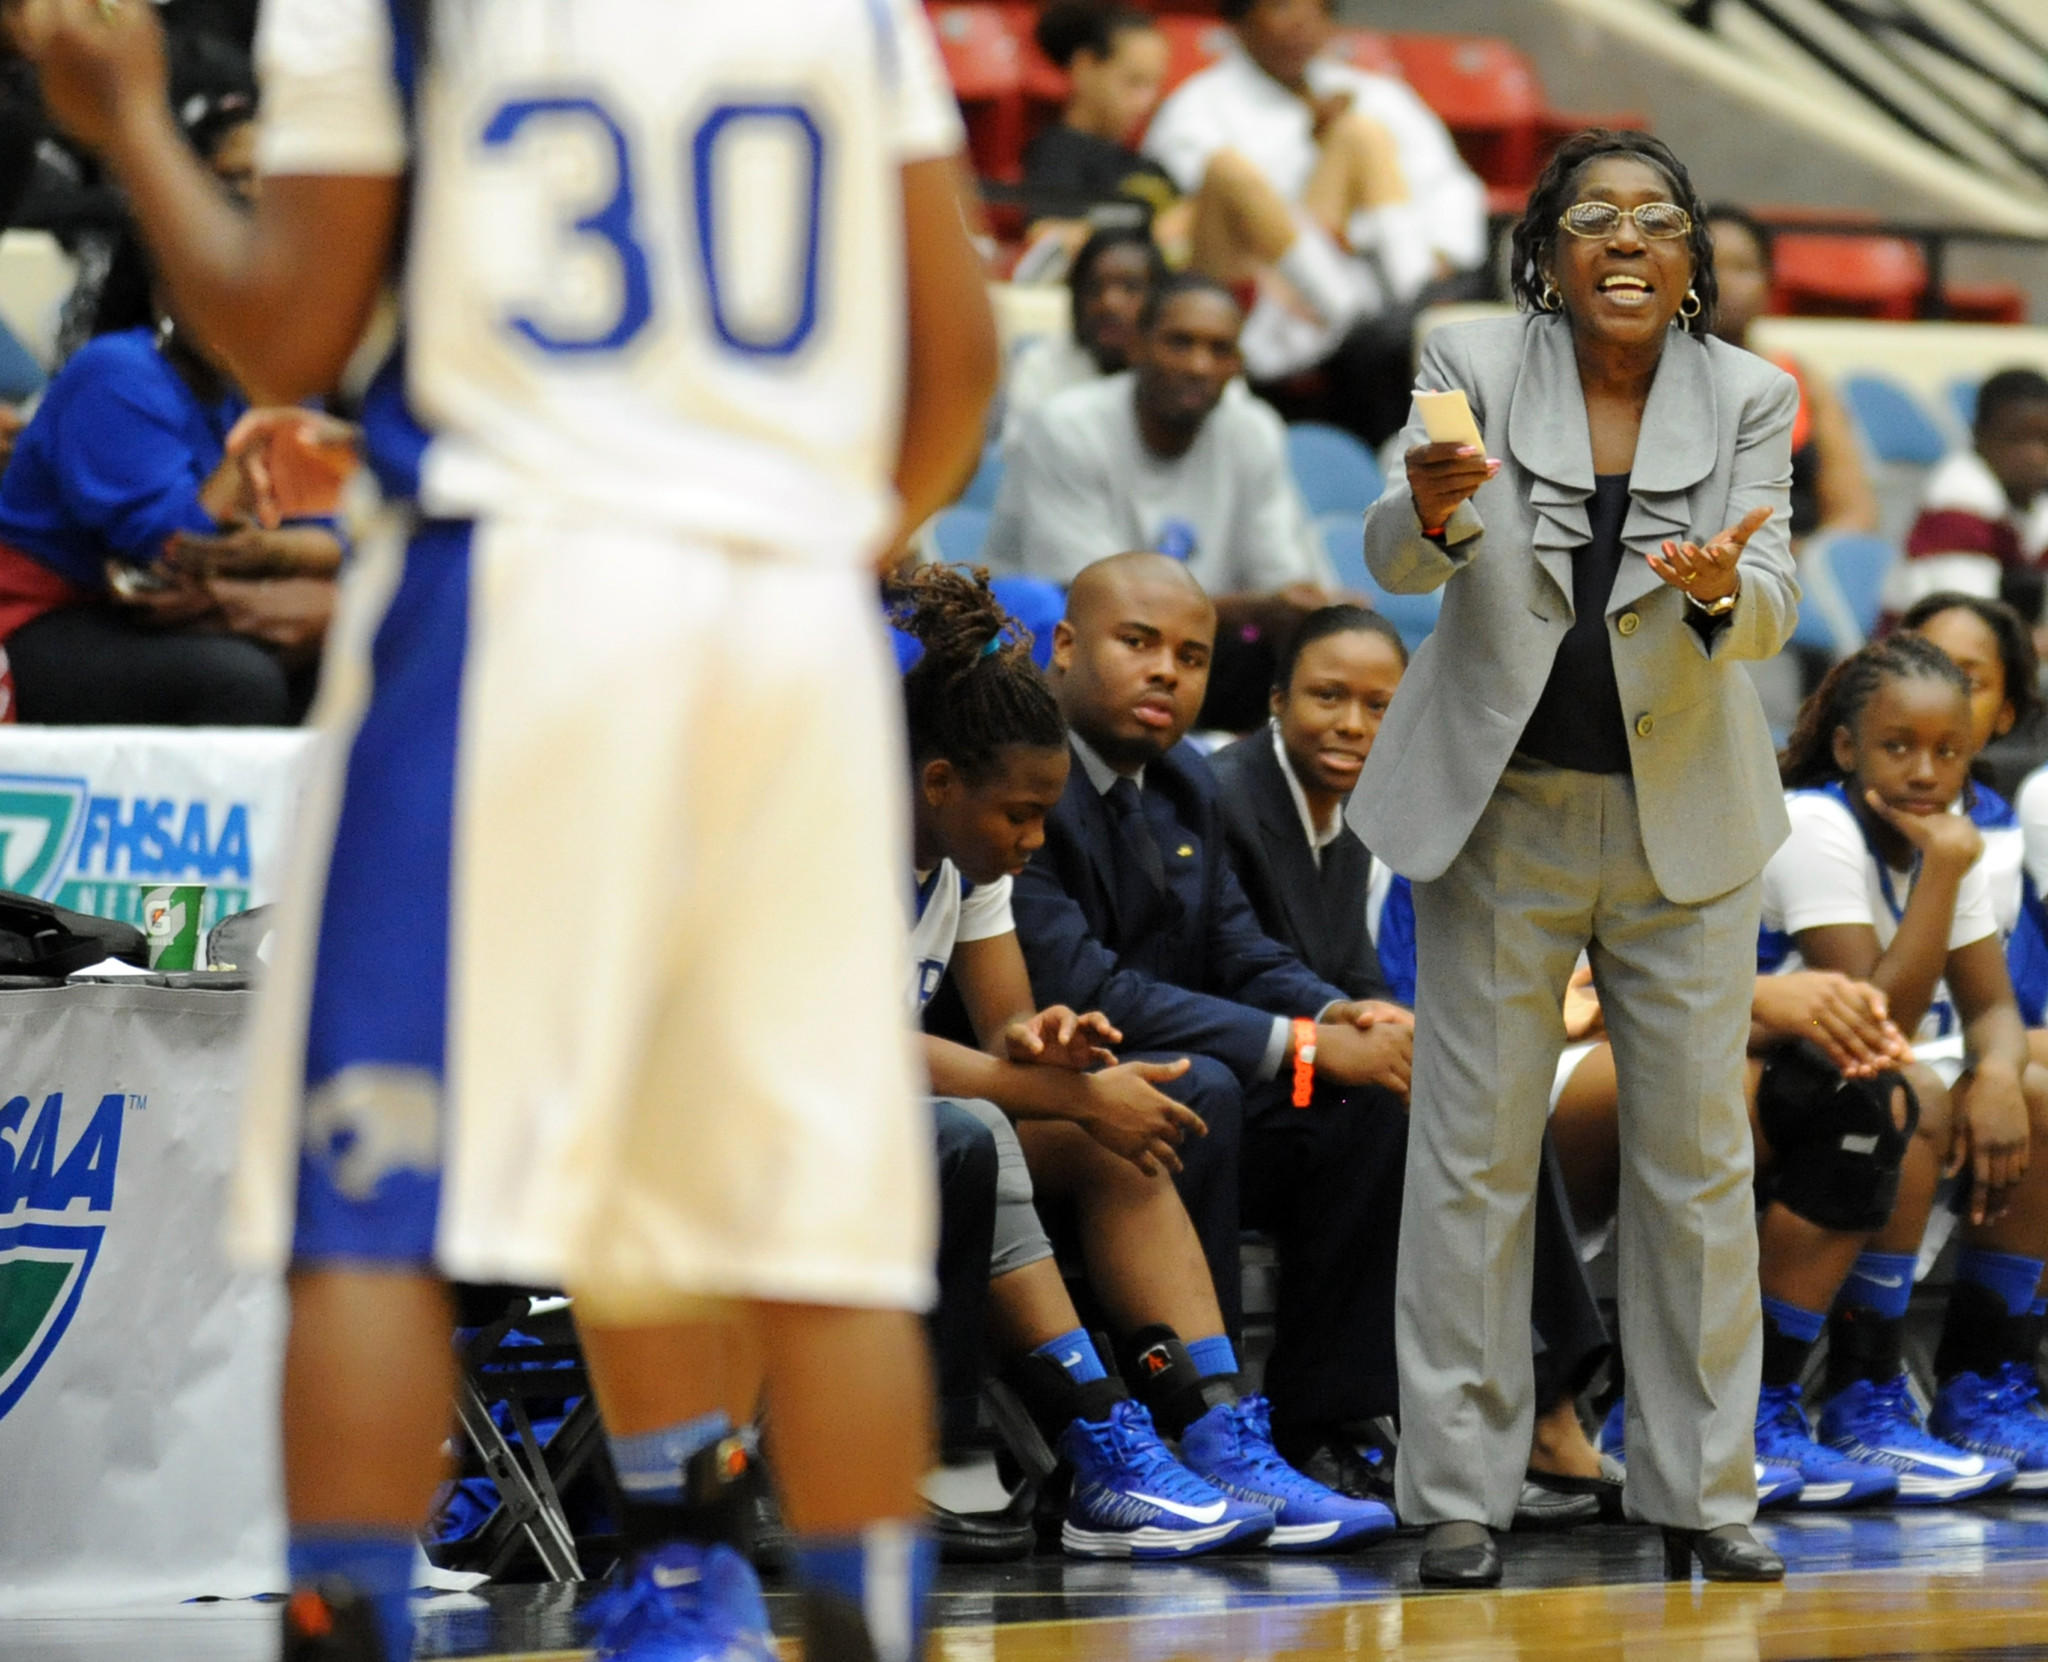 Dillard girls basketball coach Marcia Pinder was inducted into the National High School Athletic Coaches Association Hall of Fame on Tuesday in Wyoming.